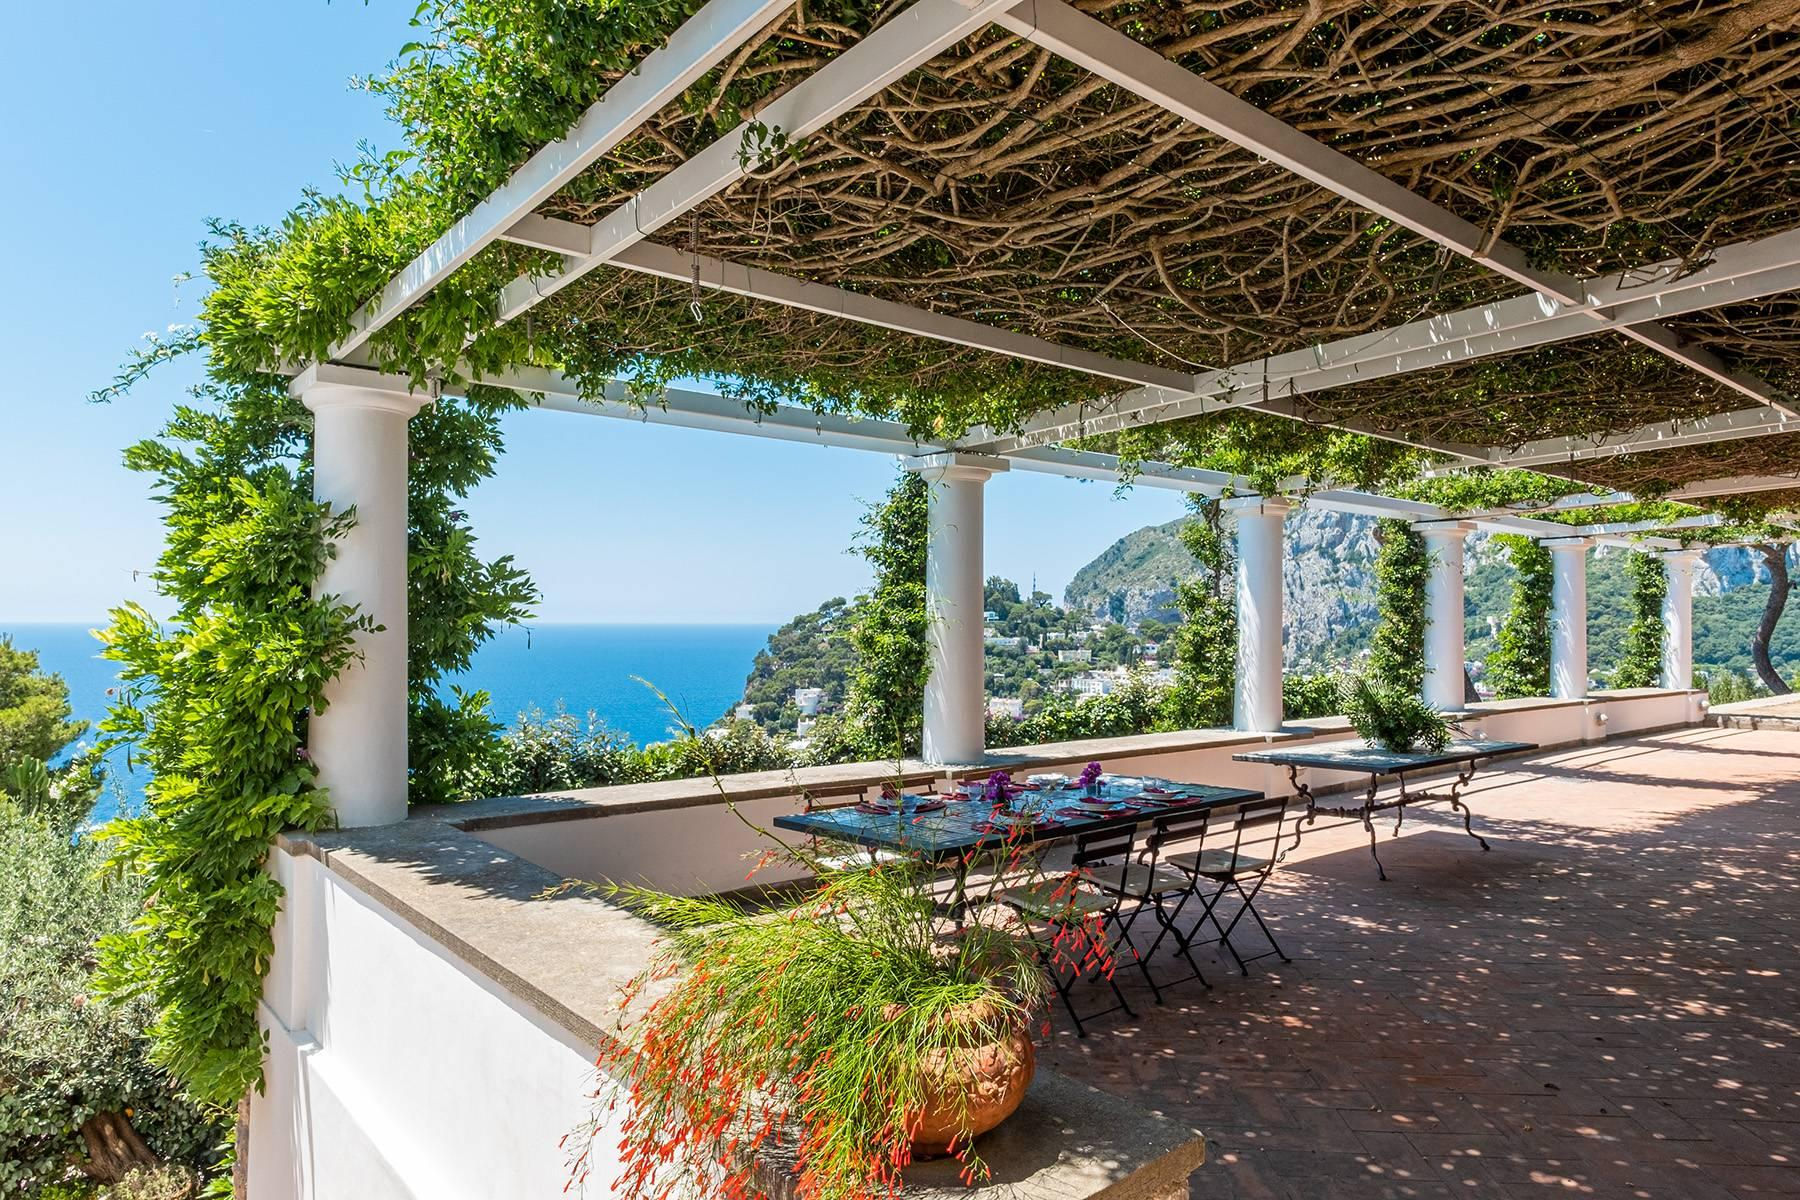 Stunning villa with swimming pool overlooking Capri and the sea - 1